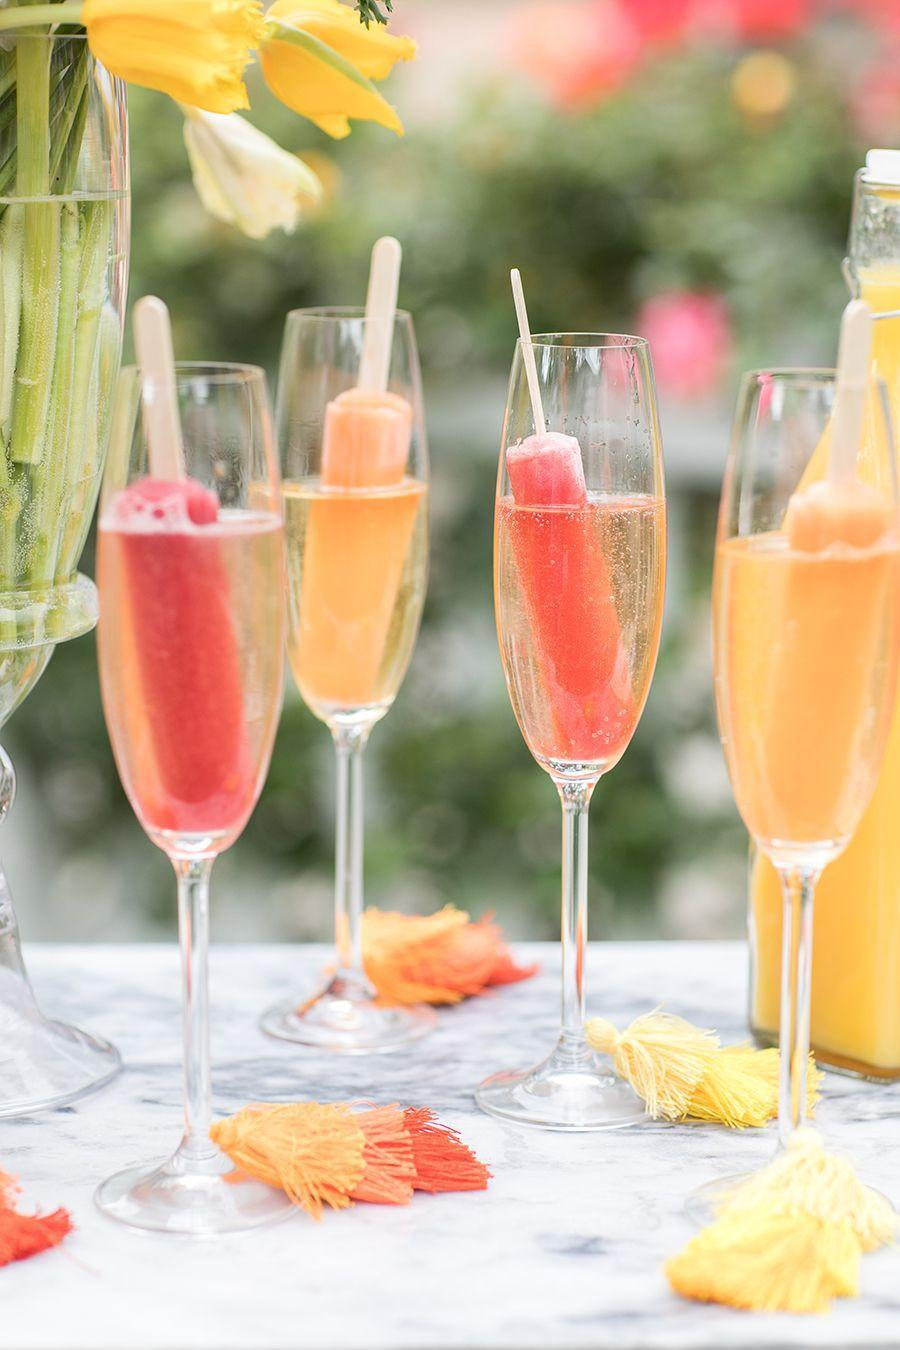 """<p>Freeze fruit juices into popsicles then stick them in champagne flutes. Just when you thought bubbly couldn't get any better. </p><p>See more at <a href=""""https://sugarandcharm.com/2018/05/a-college-graduation-bubbly-bar.html?section-2"""" rel=""""nofollow noopener"""" target=""""_blank"""" data-ylk=""""slk:Sugar and Charm"""" class=""""link rapid-noclick-resp"""">Sugar and Charm</a>.</p>"""